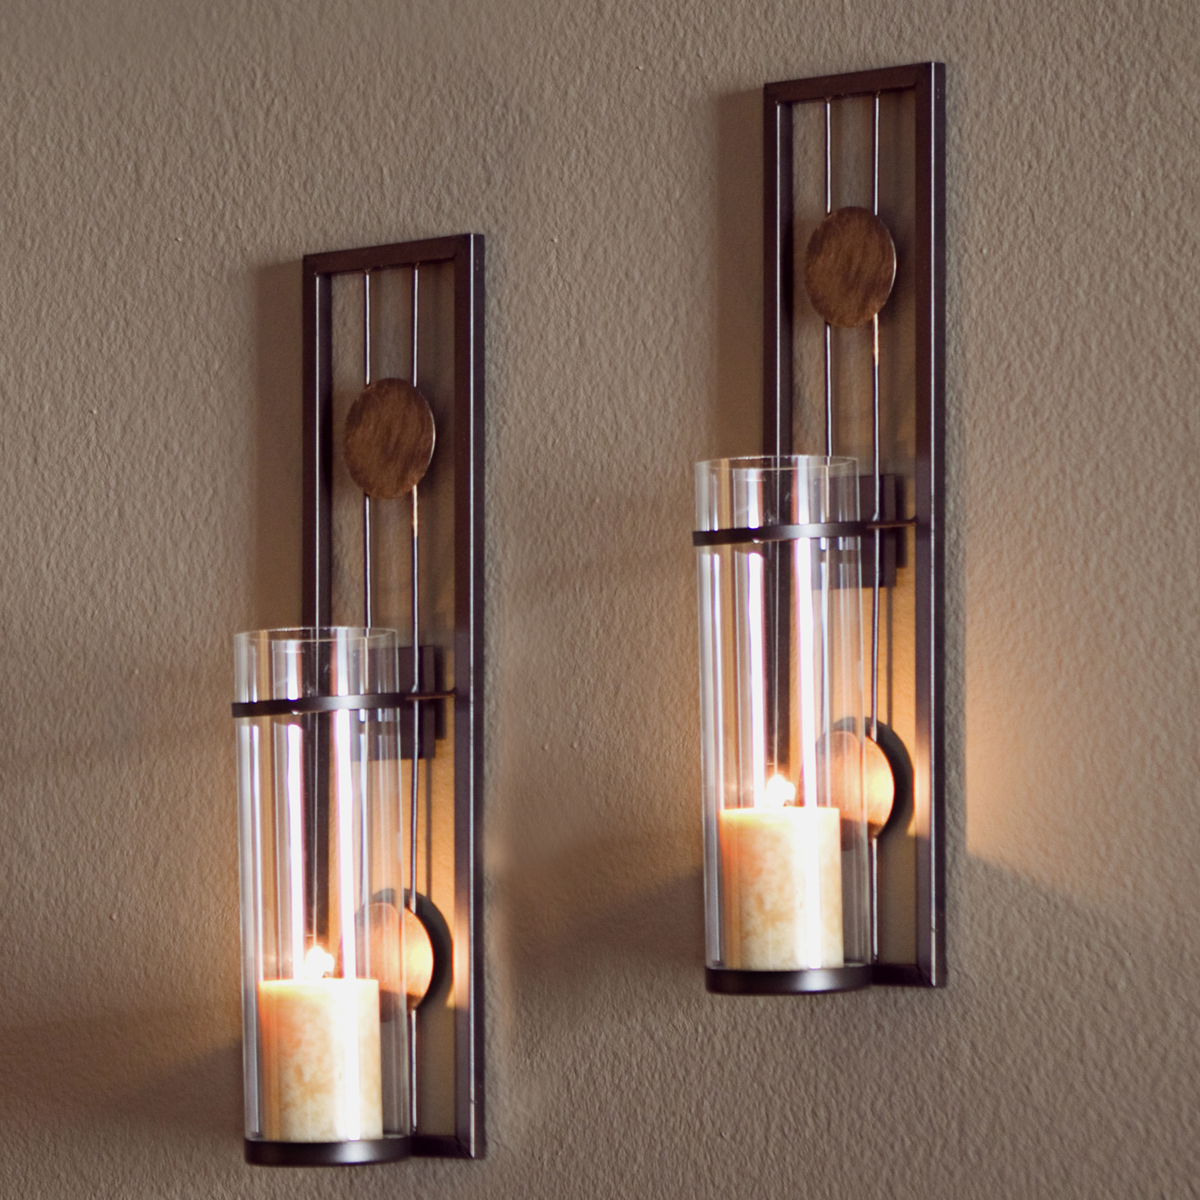 Buy danya b set of two contemporary metal wall sconces with buy danya b set of two contemporary metal wall sconces with antique patina medallions at wildorchidquilts amipublicfo Image collections